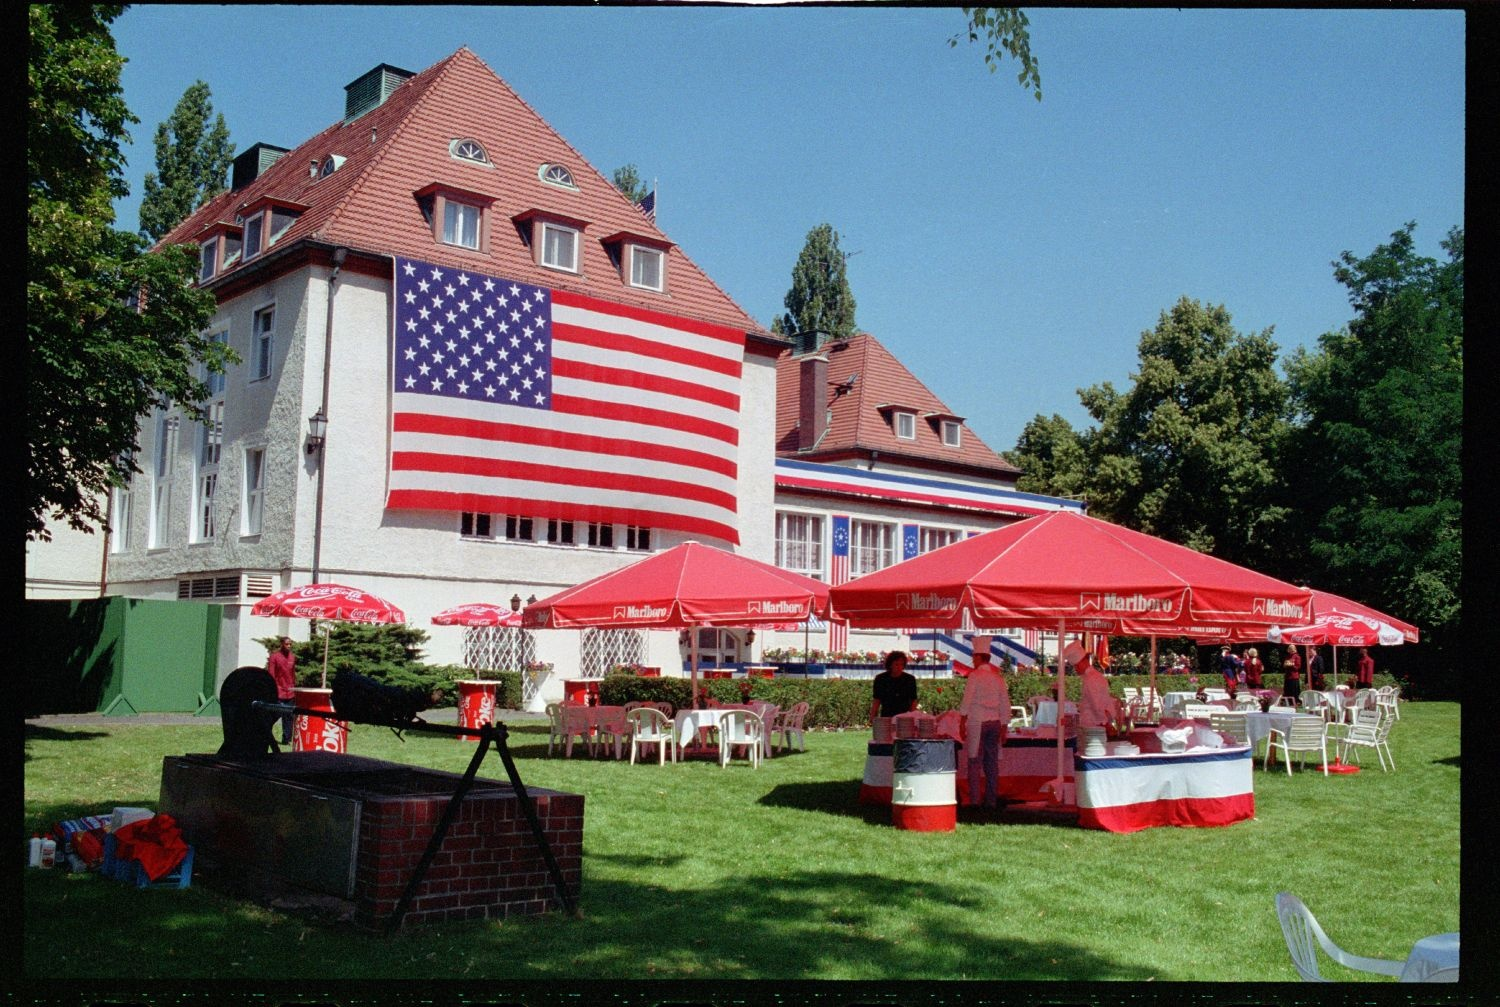 Fotografie: Empfang zum 4th of July im Harnack House in Berlin-Dahlem (AlliiertenMuseum/U.S. Army Photograph Public Domain Mark)